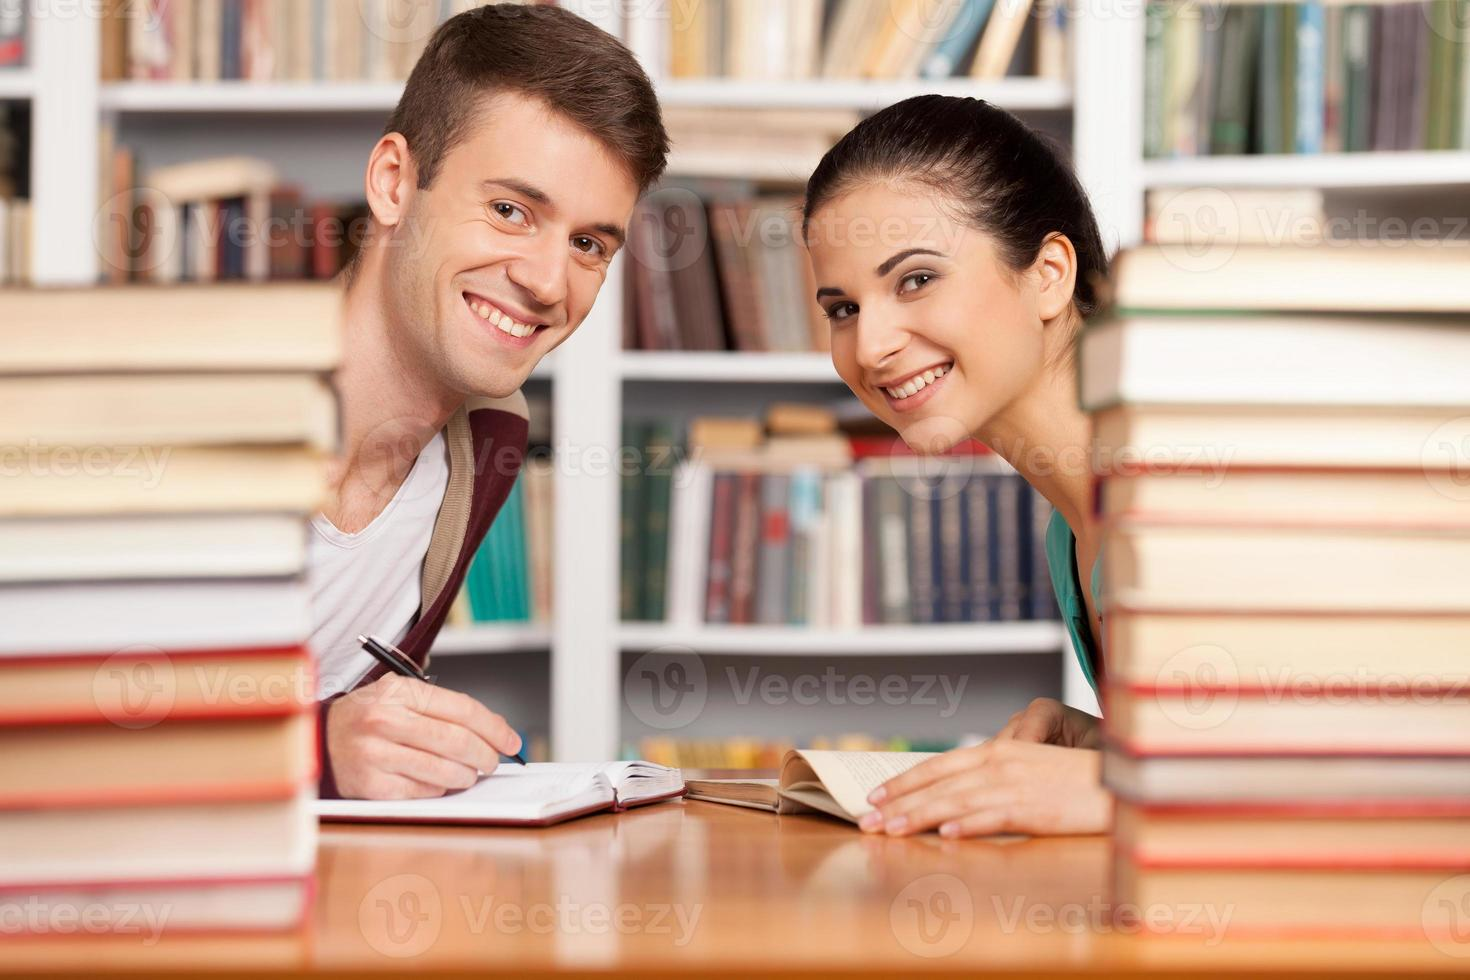 Studying together. photo